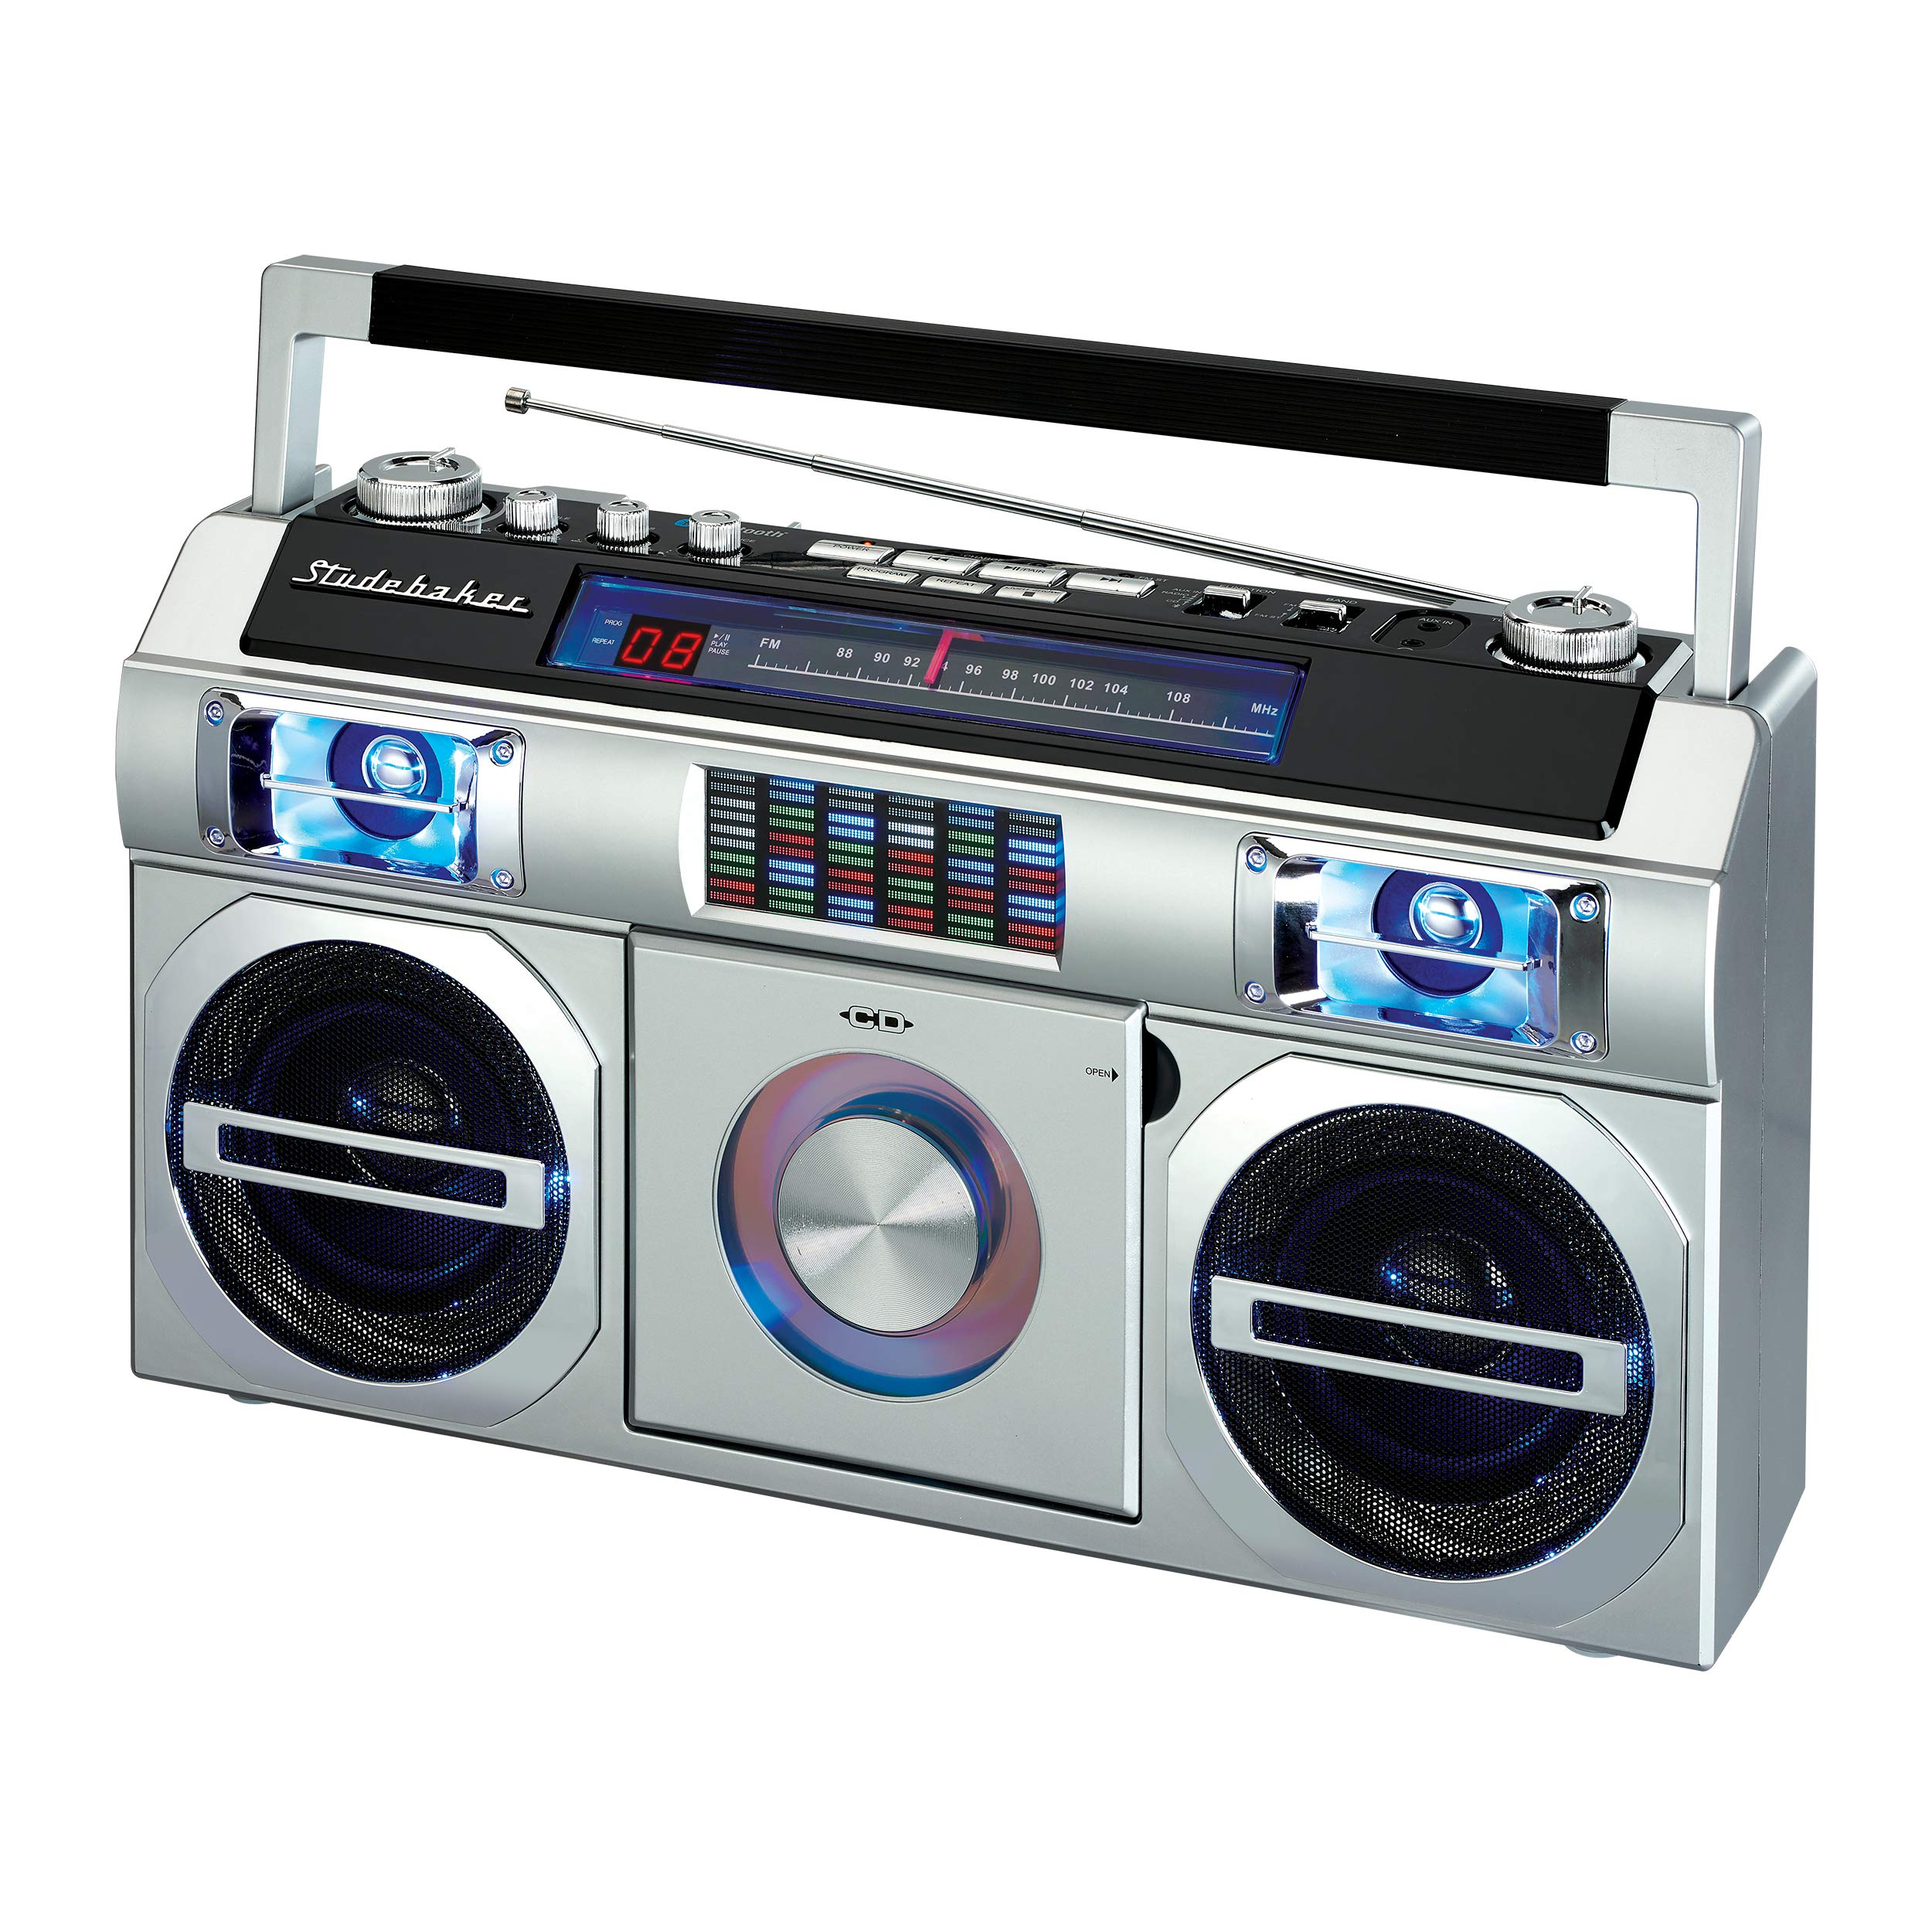 Studebaker SB2145S 80's Retro Street Boombox with FM Radio, CD Player, LED EQ, 10 Watts RMS and AC/DC in Silver by Studebaker (Image #1)